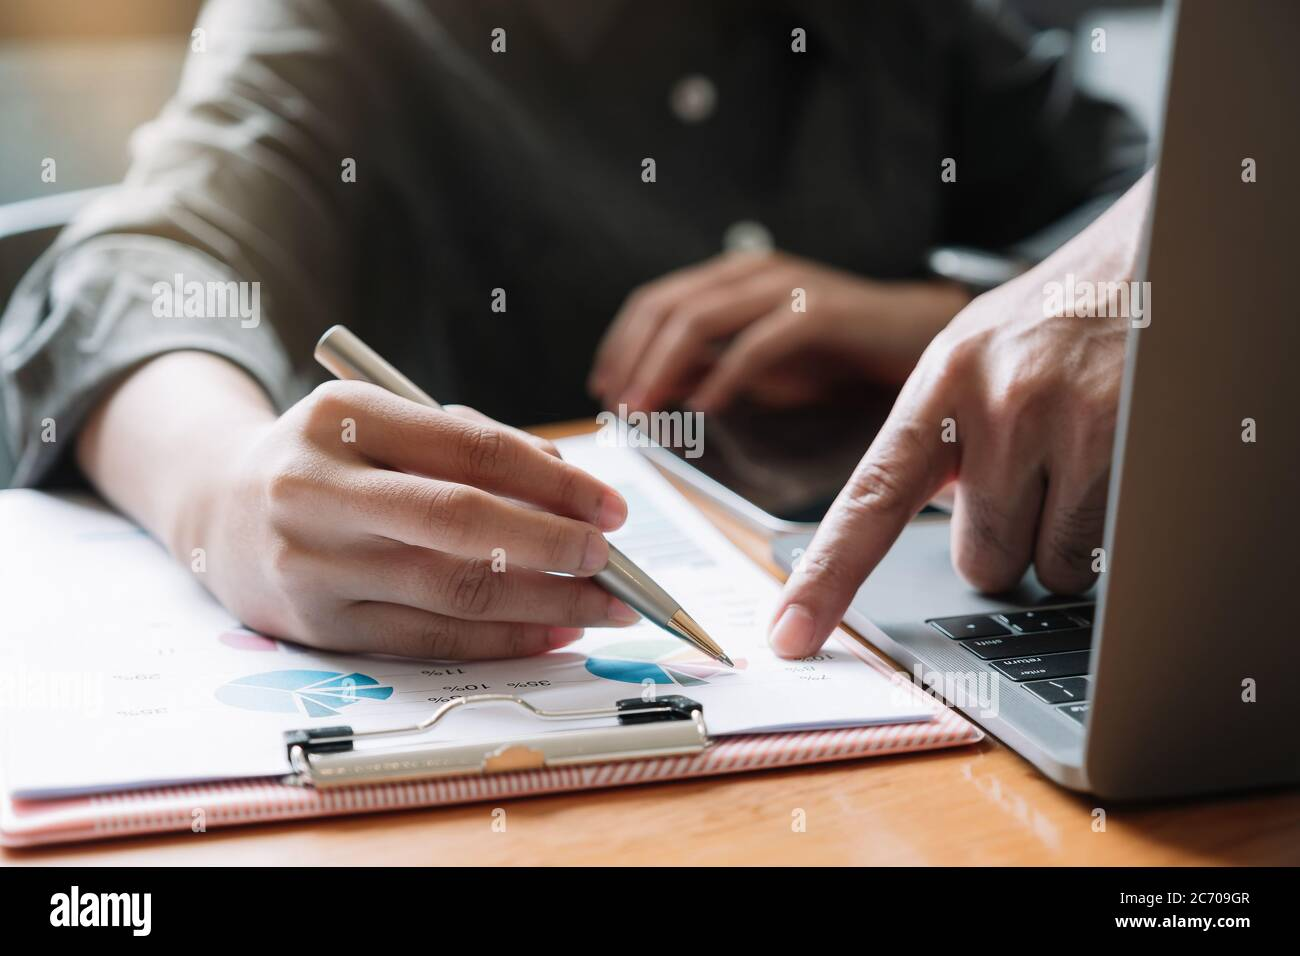 Close up Business meeting and discussing for finance, tax, accounting, statistics and analytic research concept Stock Photo